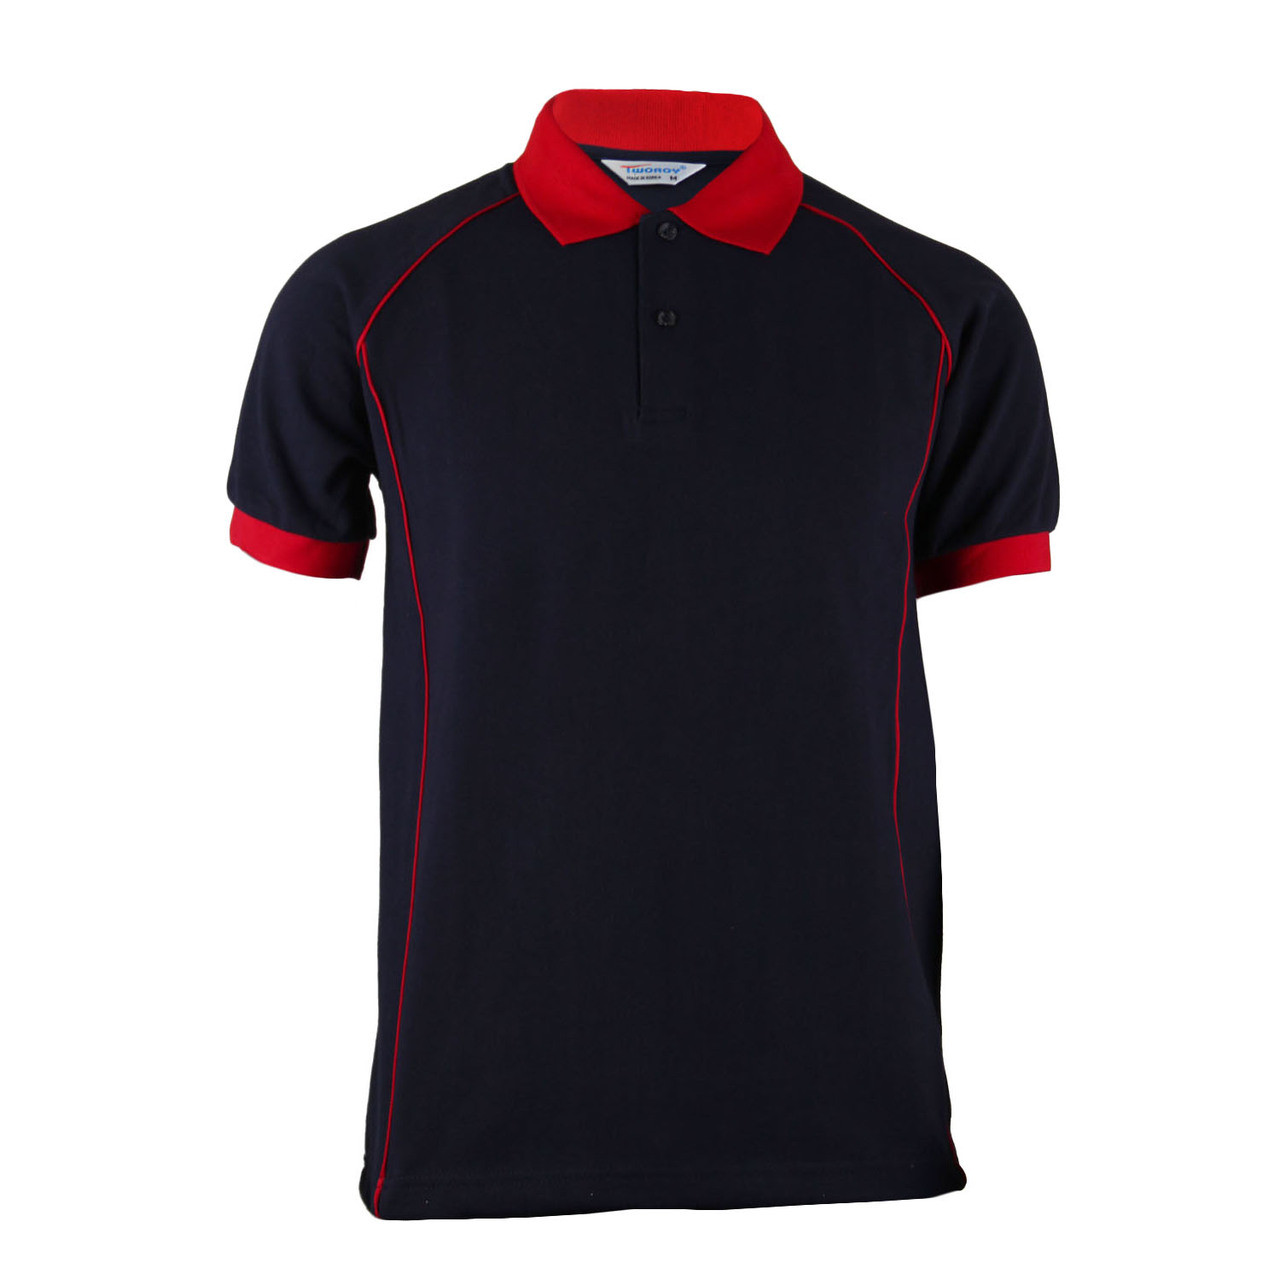 BCPOLO Men\u0027s Fashion Cotton Polo Navy Shirt Red Design Point Short Sleeves  Shirt